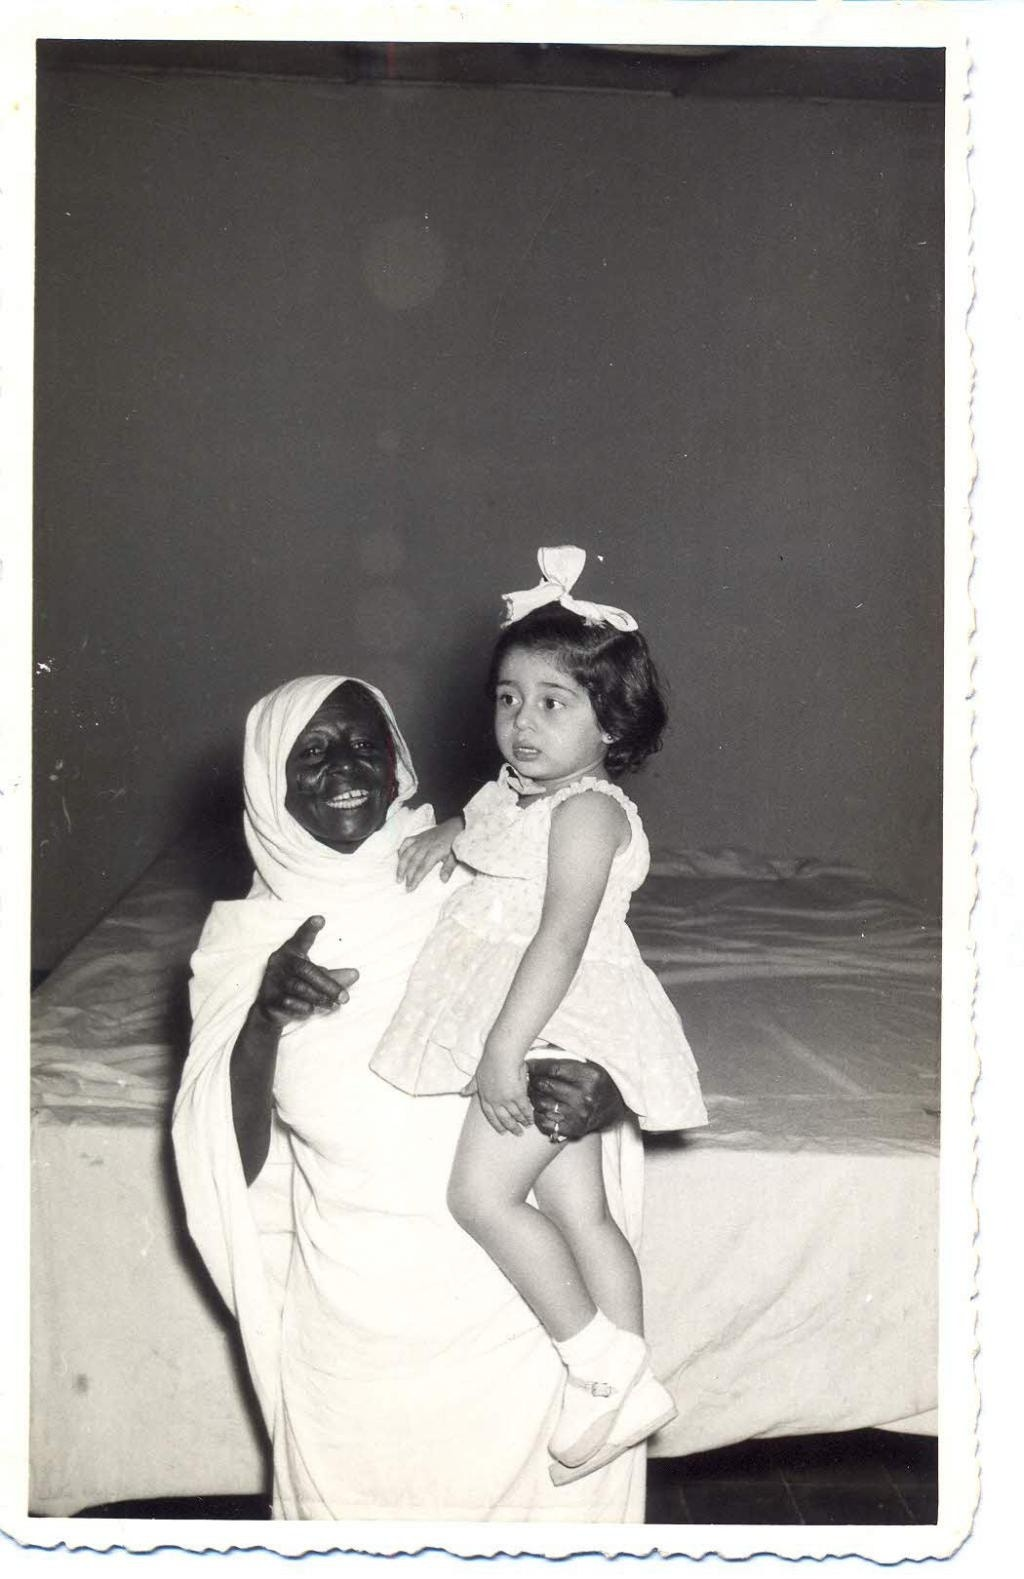 Sudanese Jews recall long-lost world with nostalgia